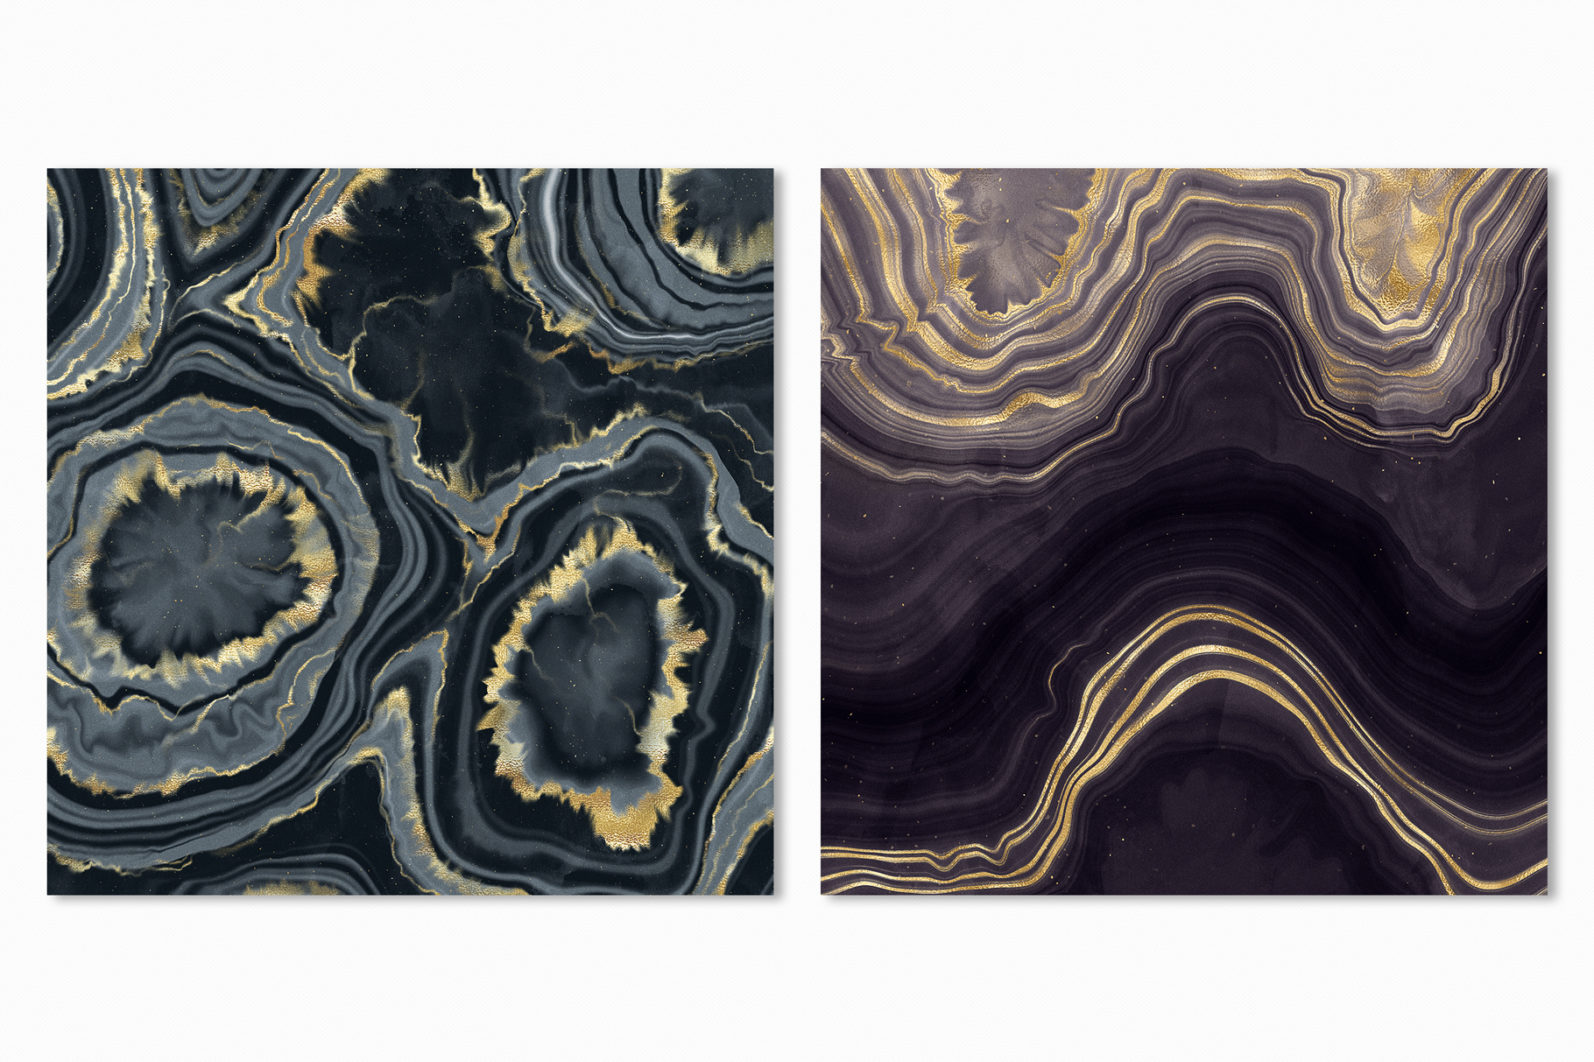 10 Agate Stone Digital Papers - Gold Veined Geode Textures - 16 agate stone backgrounds -